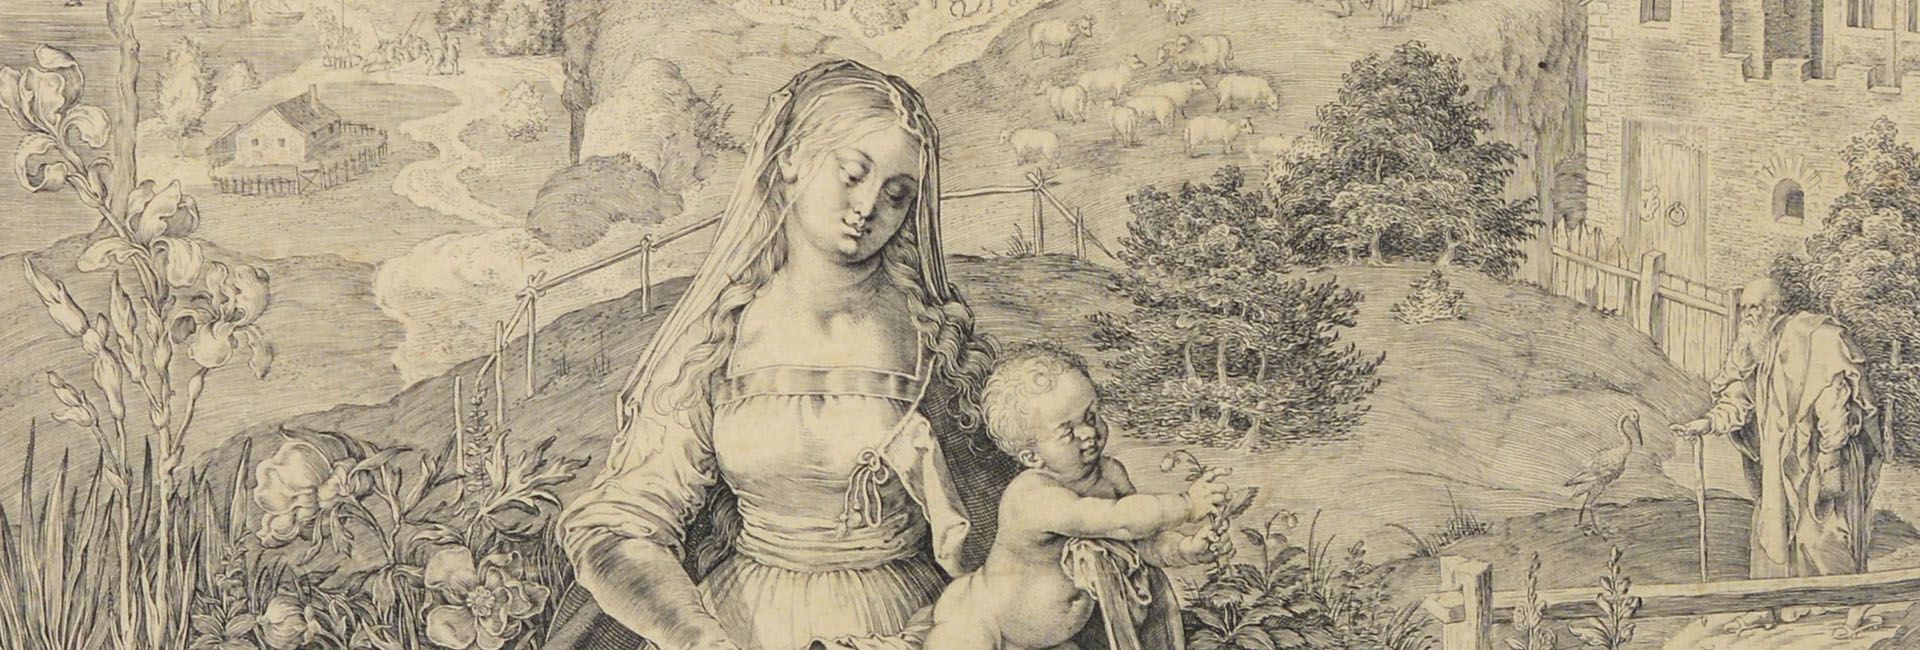 MADONNA WITH CHILD IN A LANDSCAPE [Aegidius Sadeler]